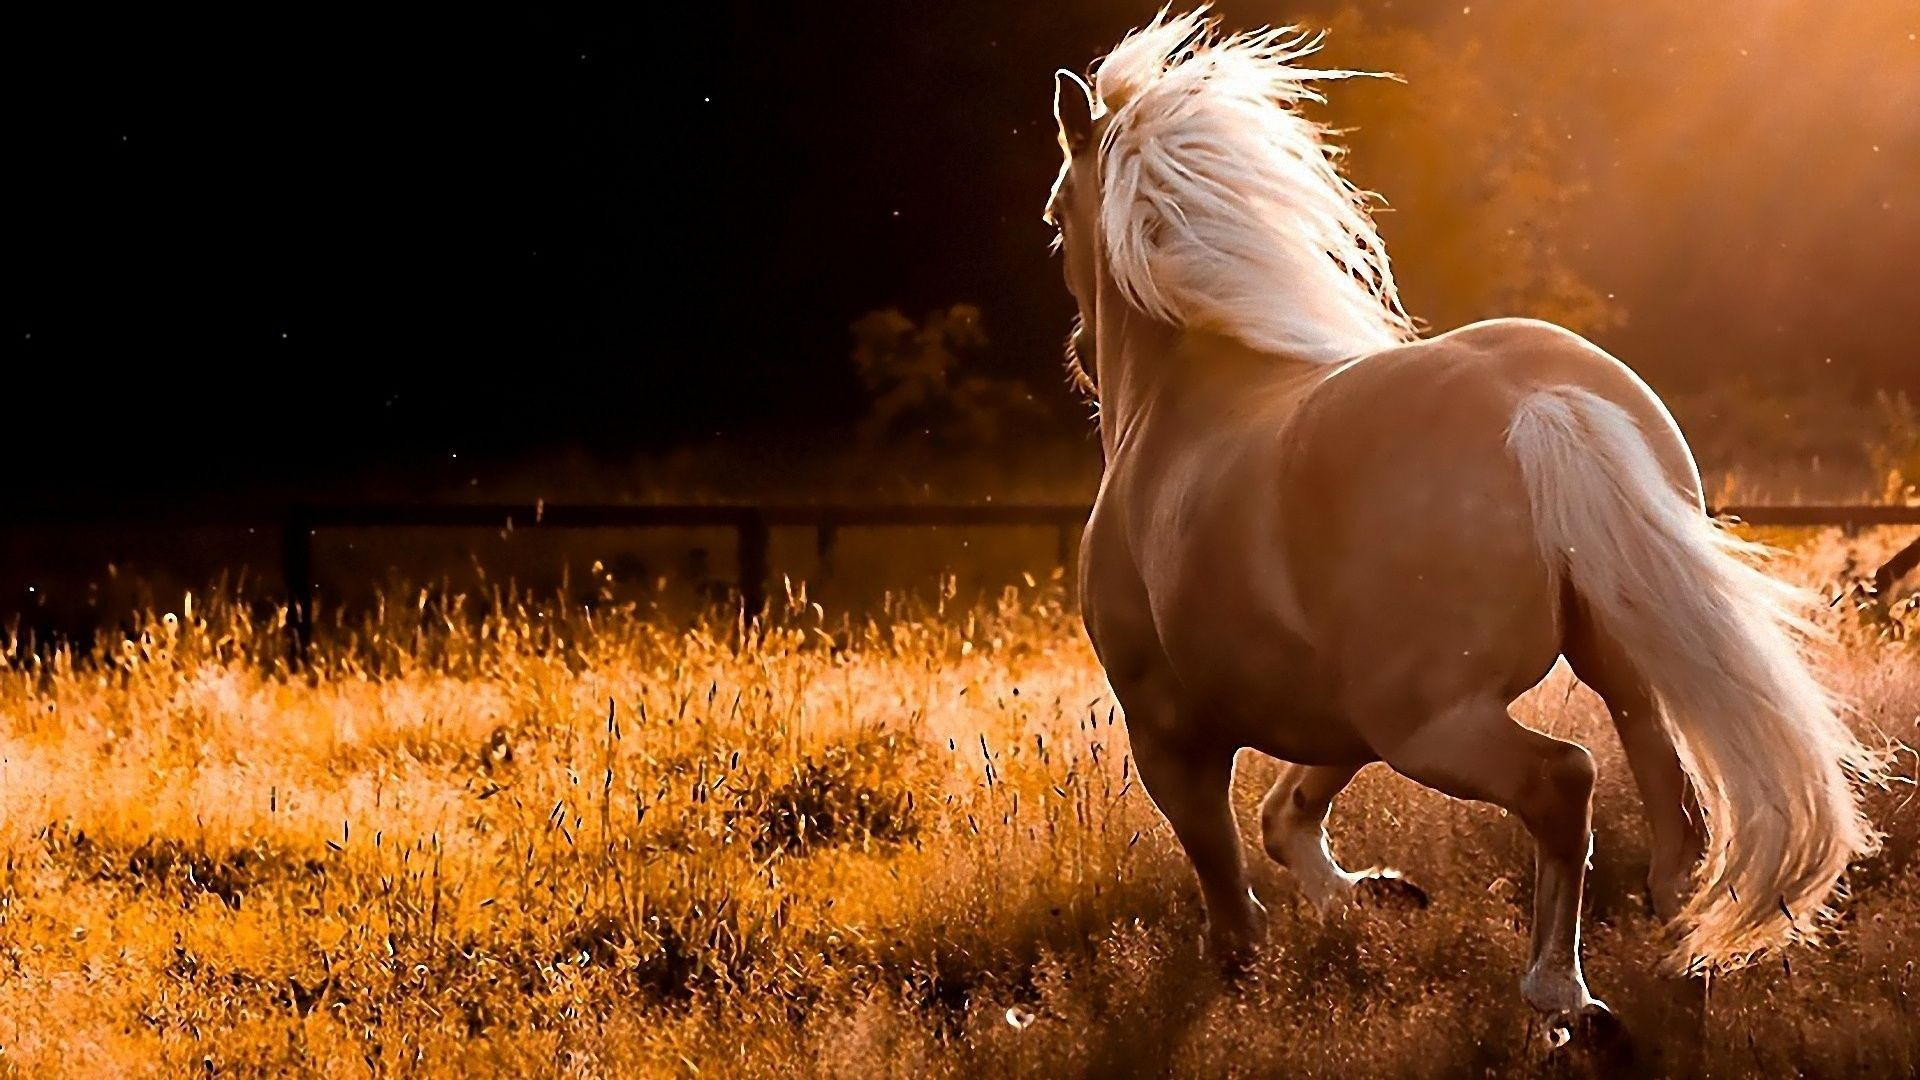 Horse Wallpaper For Computer Wallpapertag